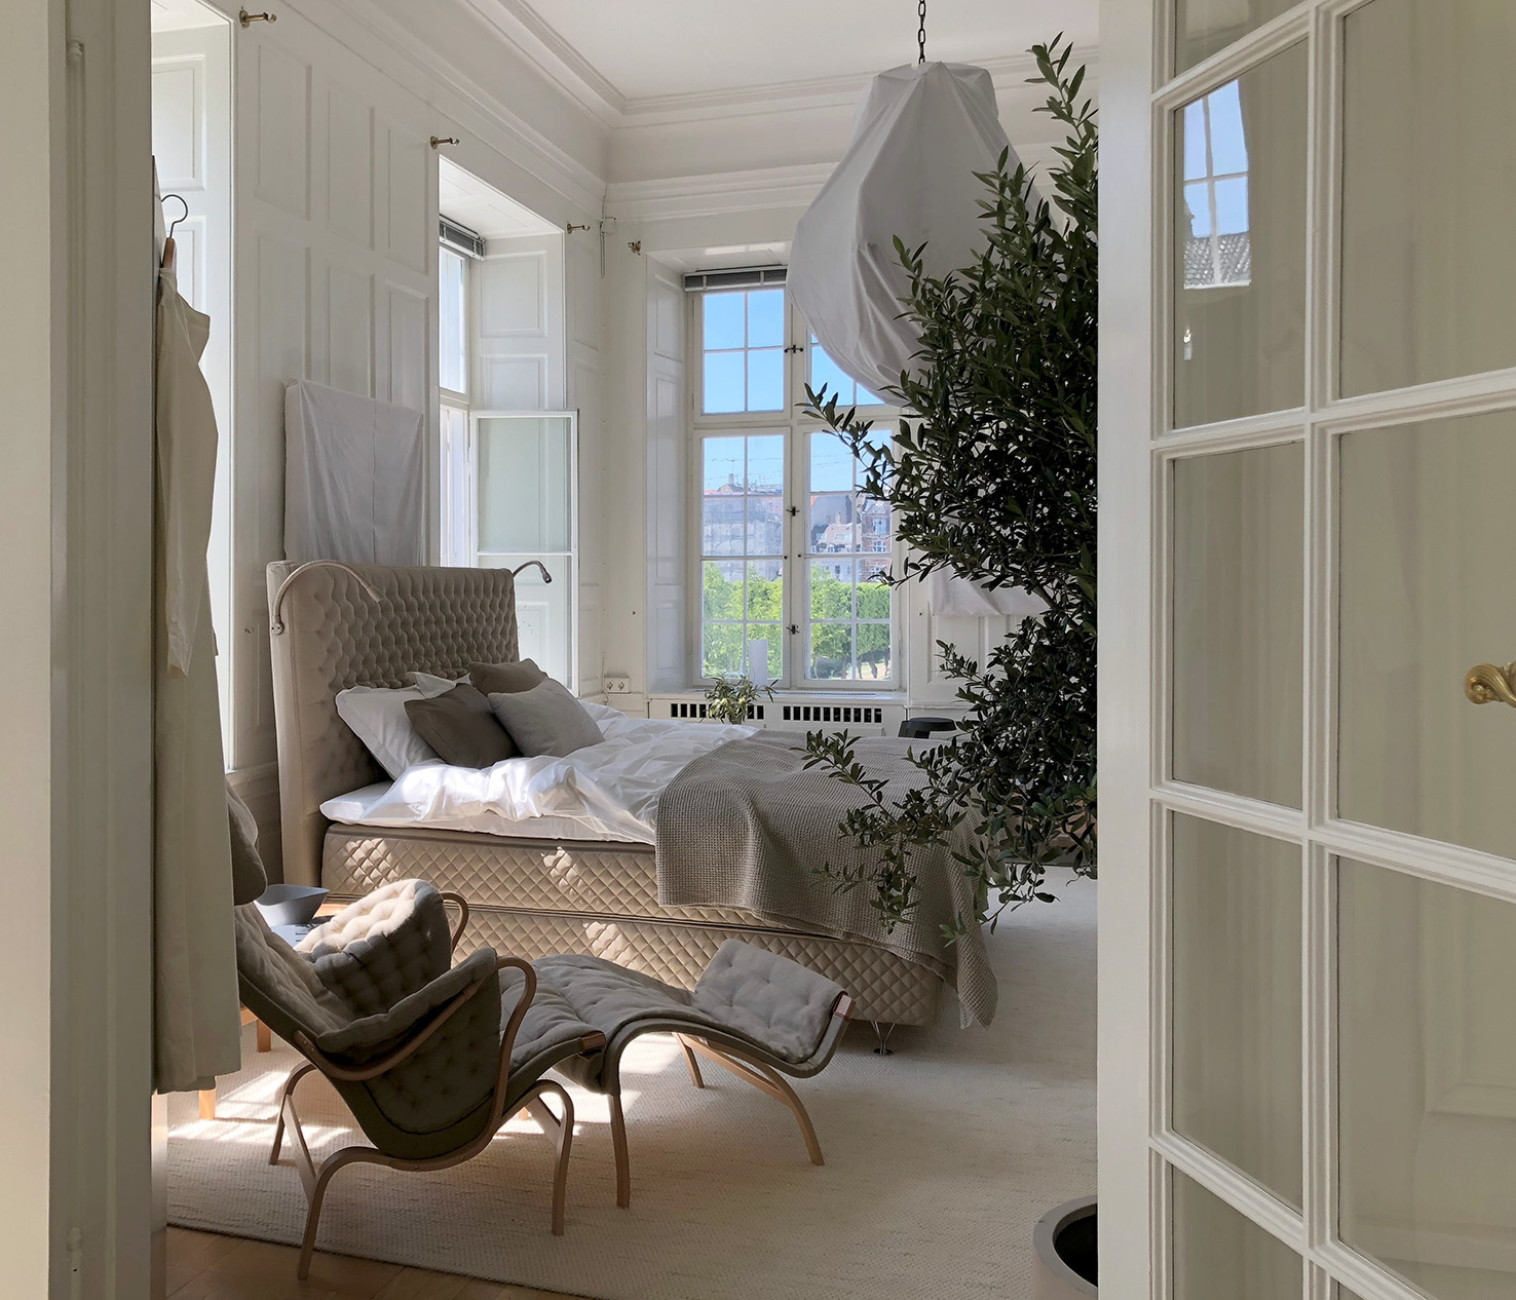 Interior designer Lotta Agaton transformed the rooms of the Swedish embassy into the 3DaysofDesign into a summer house room with beds by DUX.